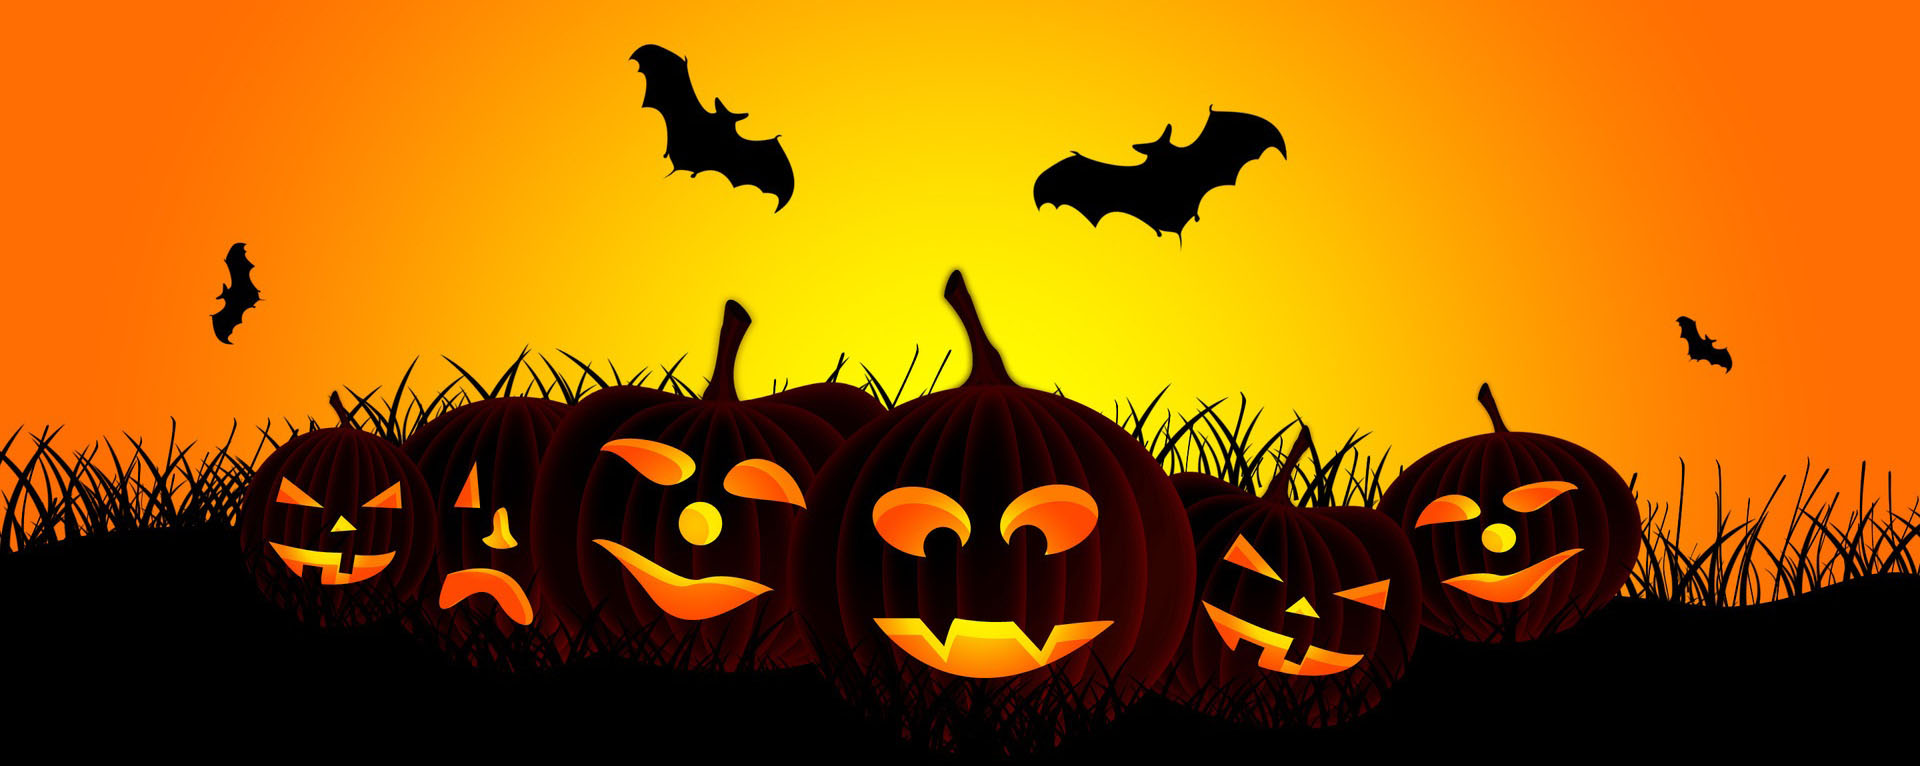 happy-halloween-wallpapers-on-wallpaper-hd-15 - École montessori